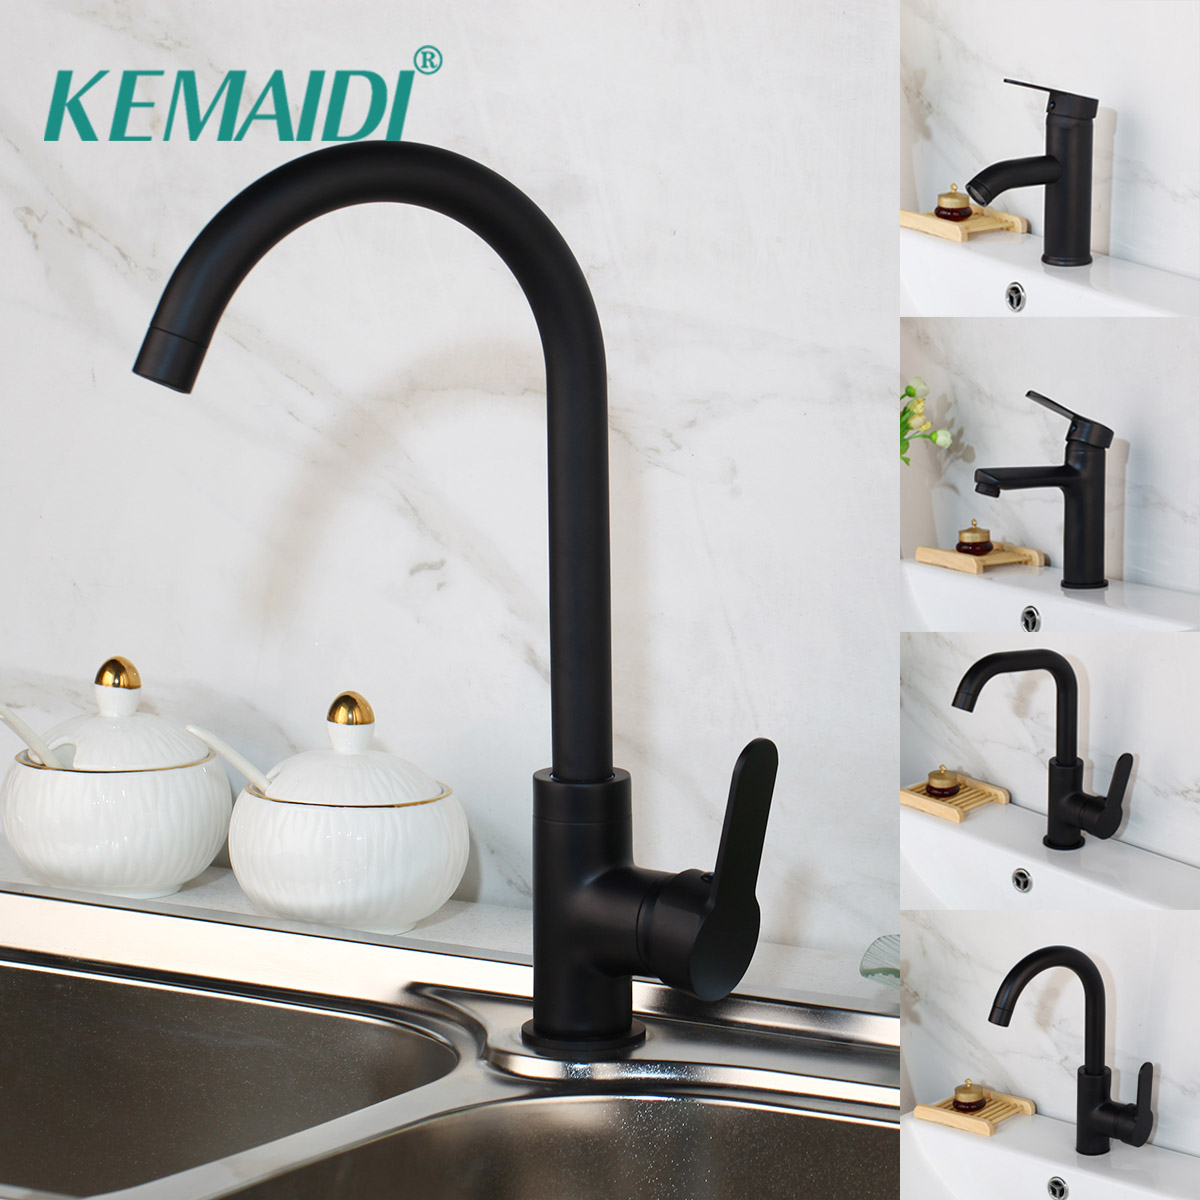 KEMAIDI Basin Faucet Water Tap Bathroom Faucet Solid Orb Nickel Brass Chrome Gold Faucets Sink Tap Mixer